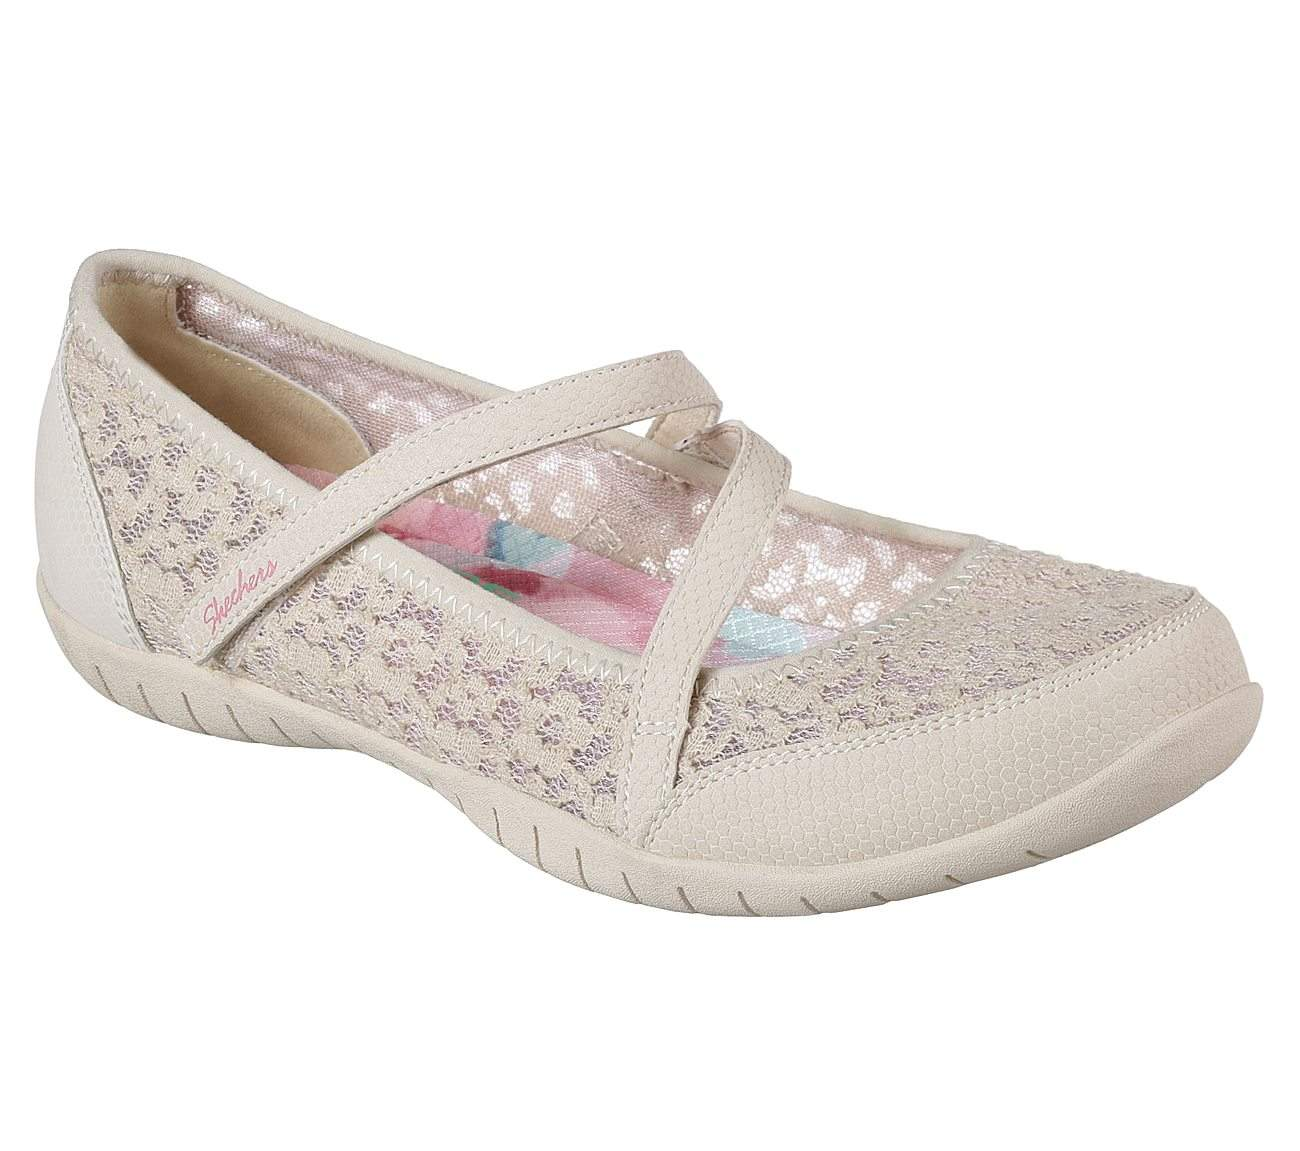 skechers mary janes